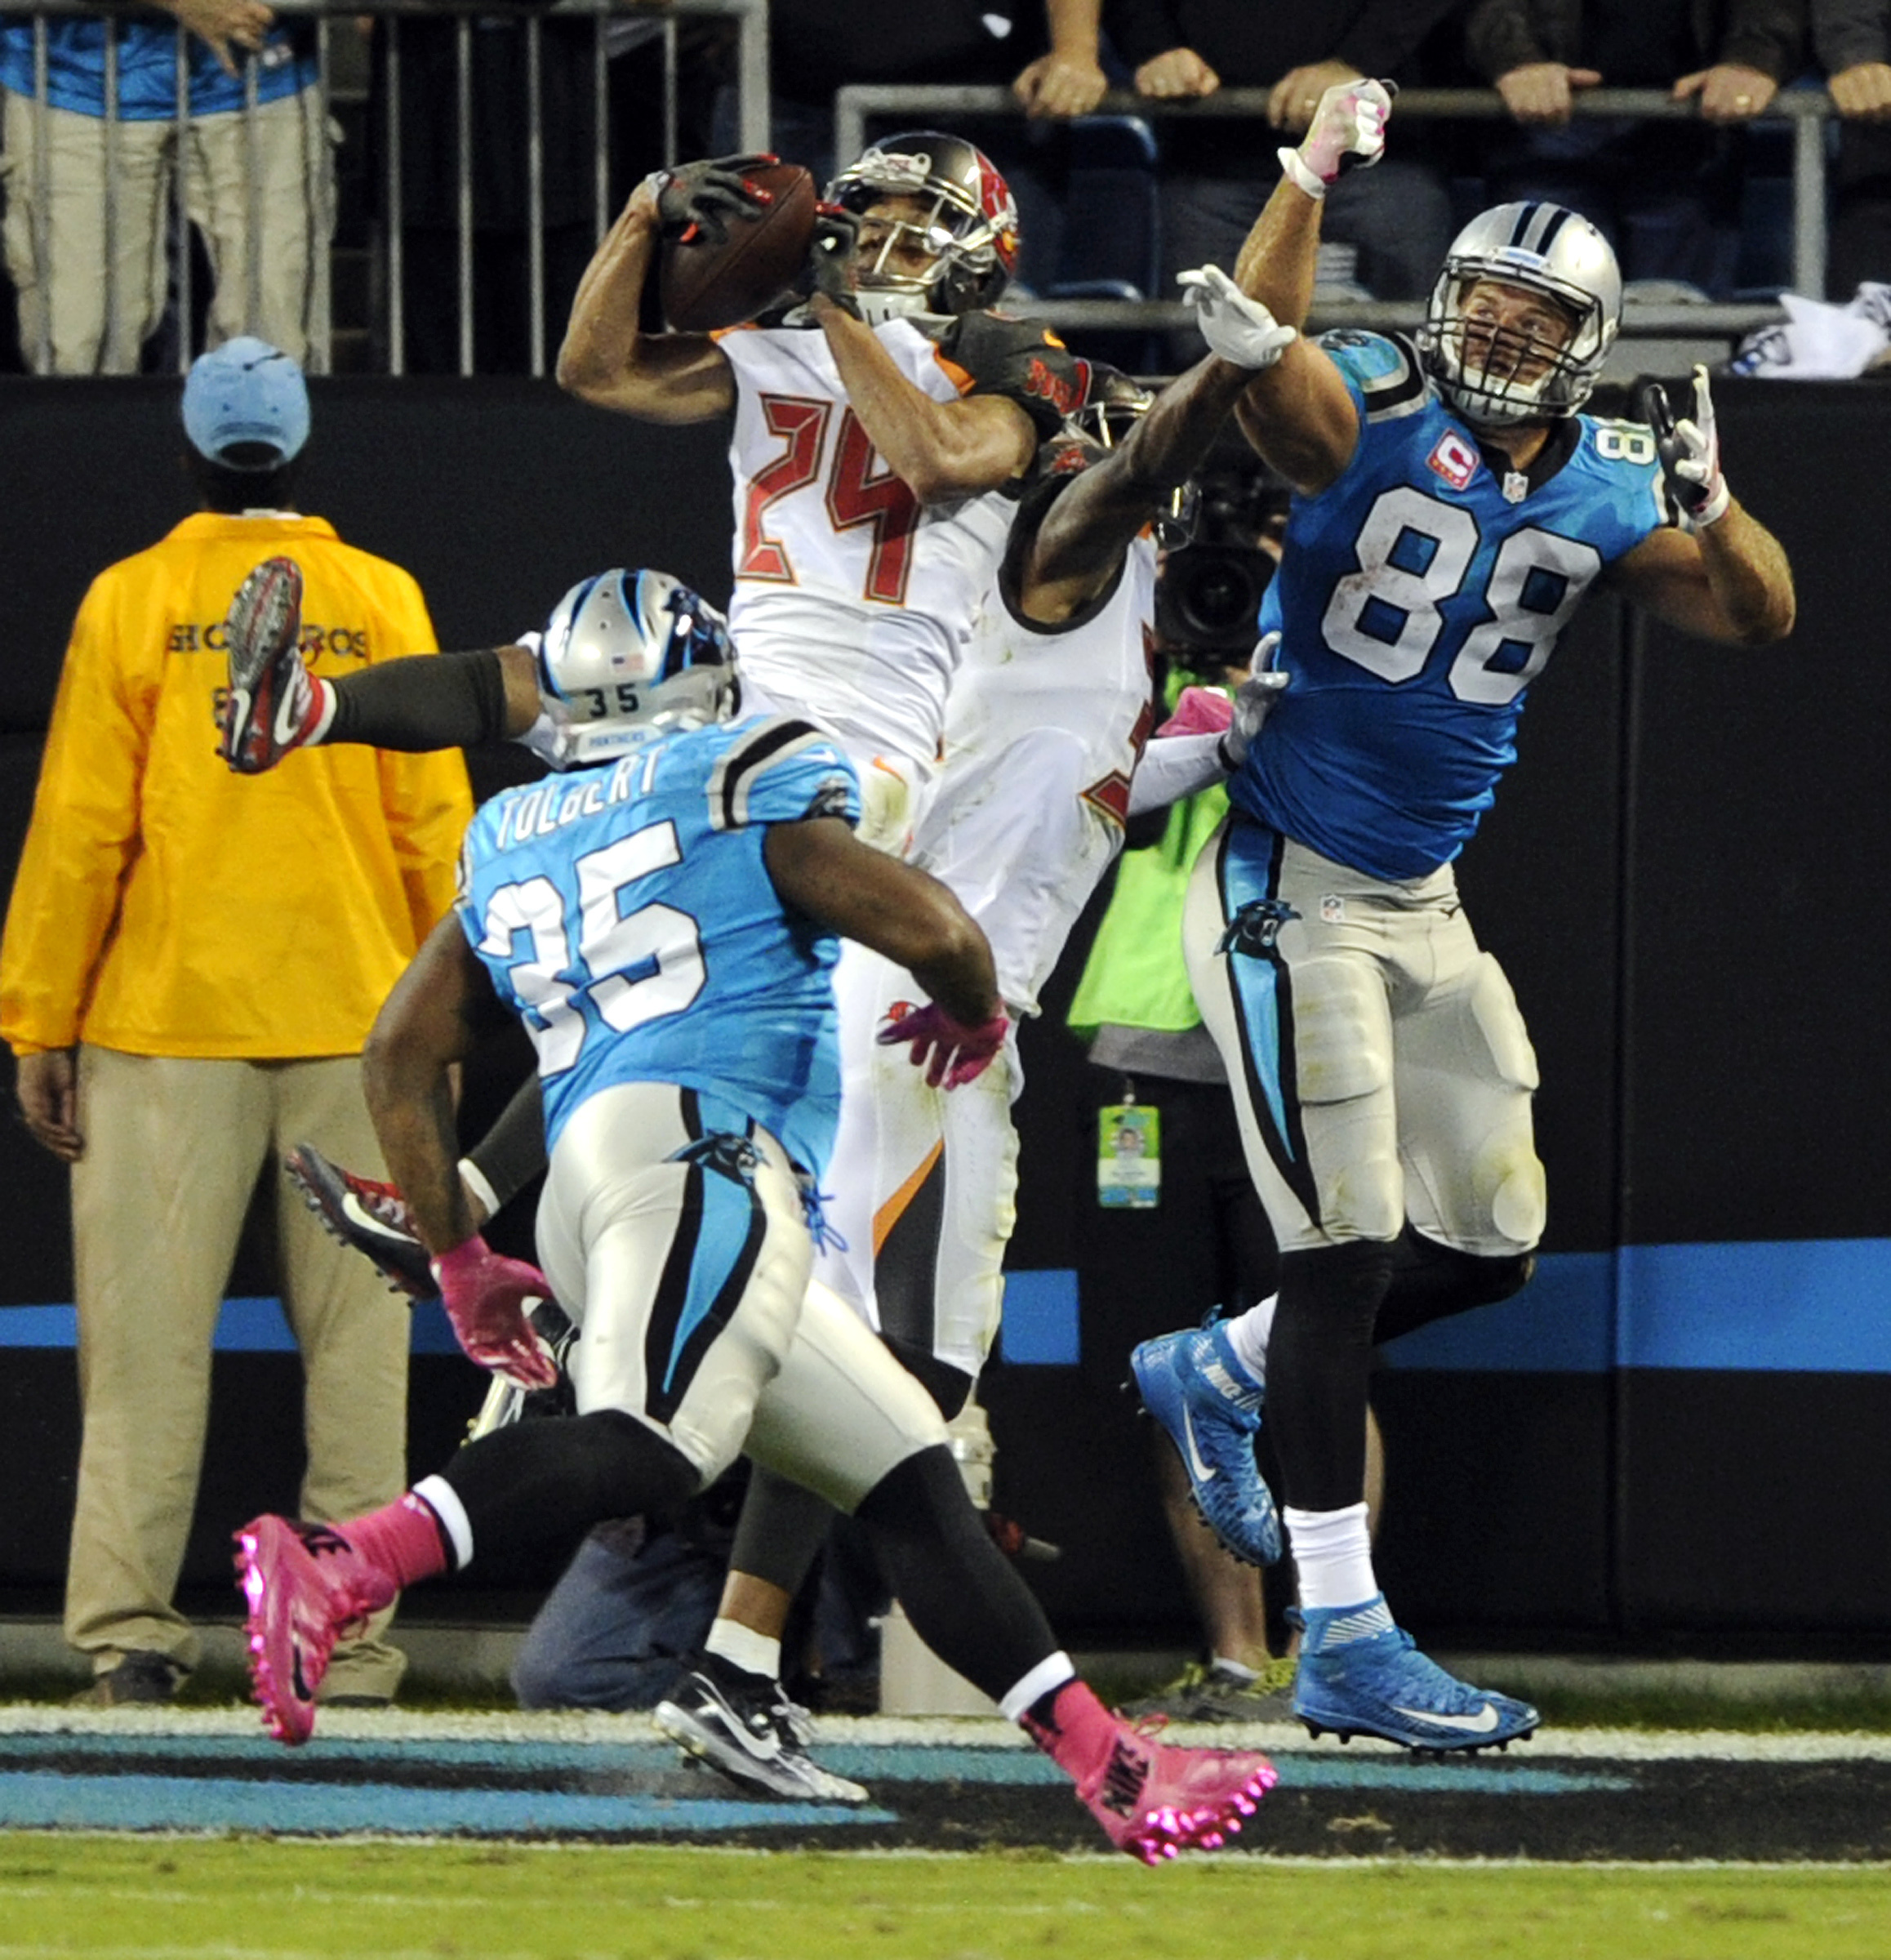 Tampa Bay Buccaneers' Brent Grimes (24) intercepts a pass intended for Carolina Panthers' Greg Olsen (88) in the second half of an NFL football game in Charlotte, N.C., Monday, Oct. 10, 2016. (AP Photo/Mike McCarn)